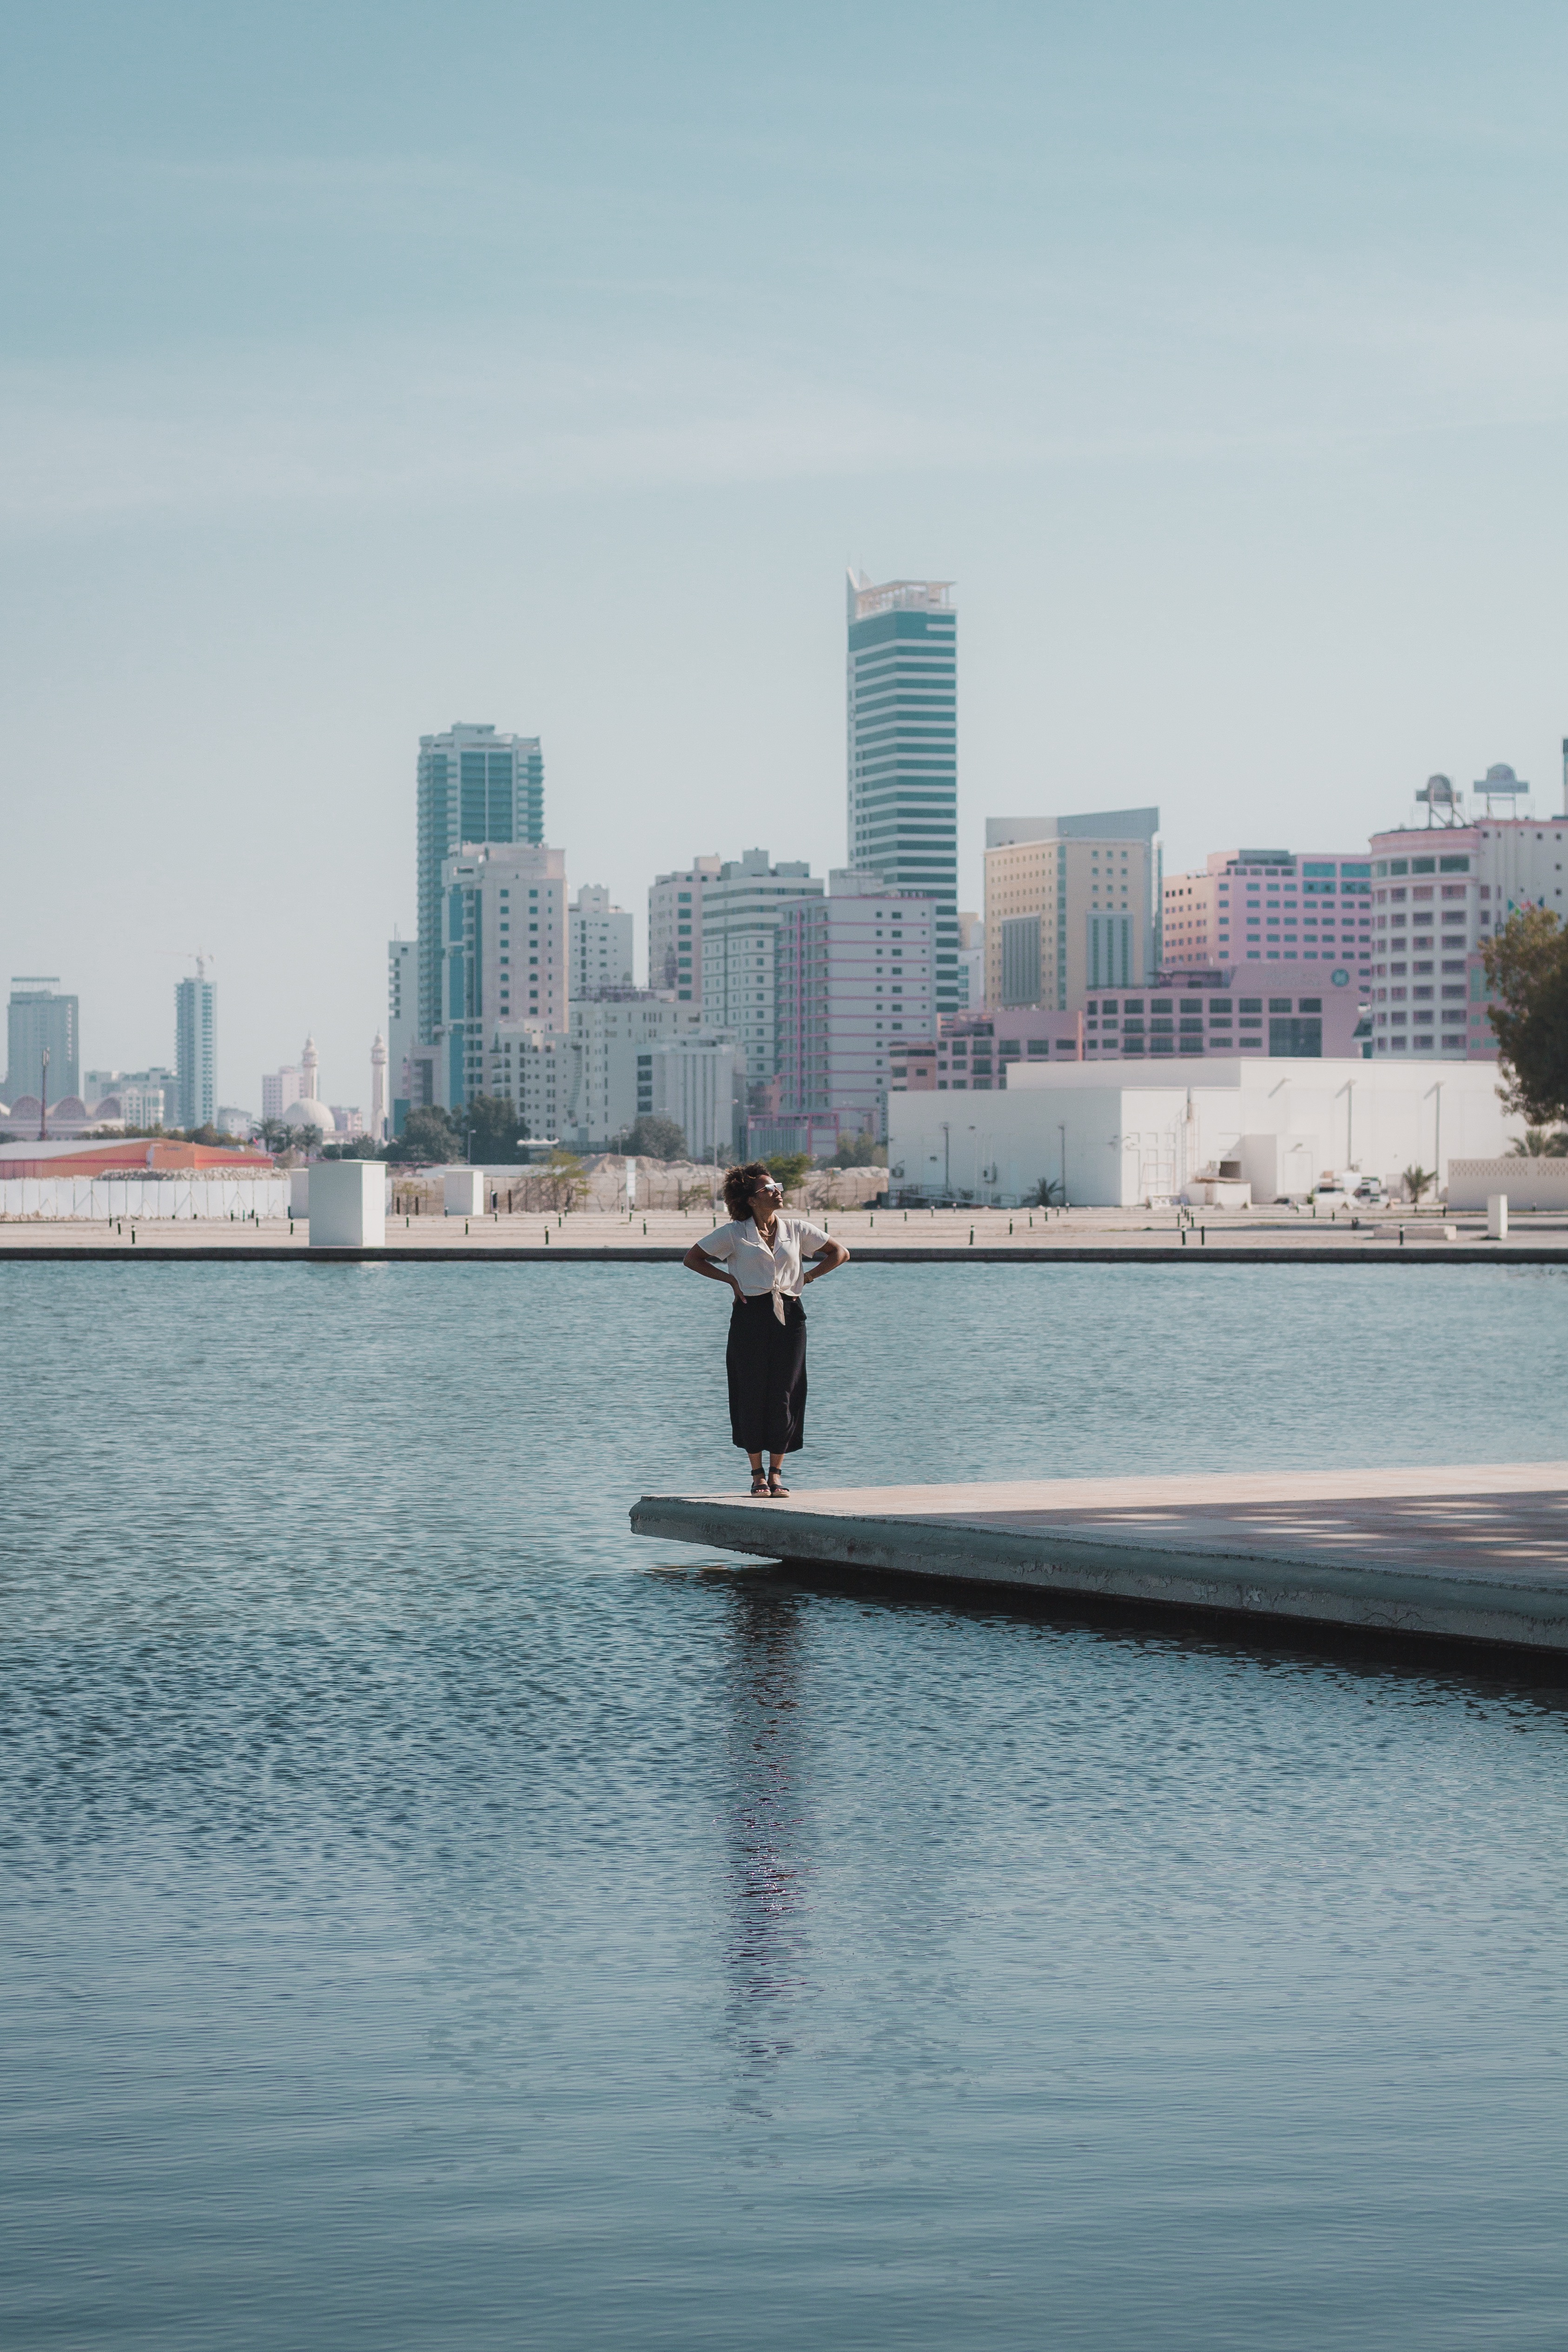 Illustrated by Sade - Woman outside the Bahrain National Theater with city skyline and water in the background